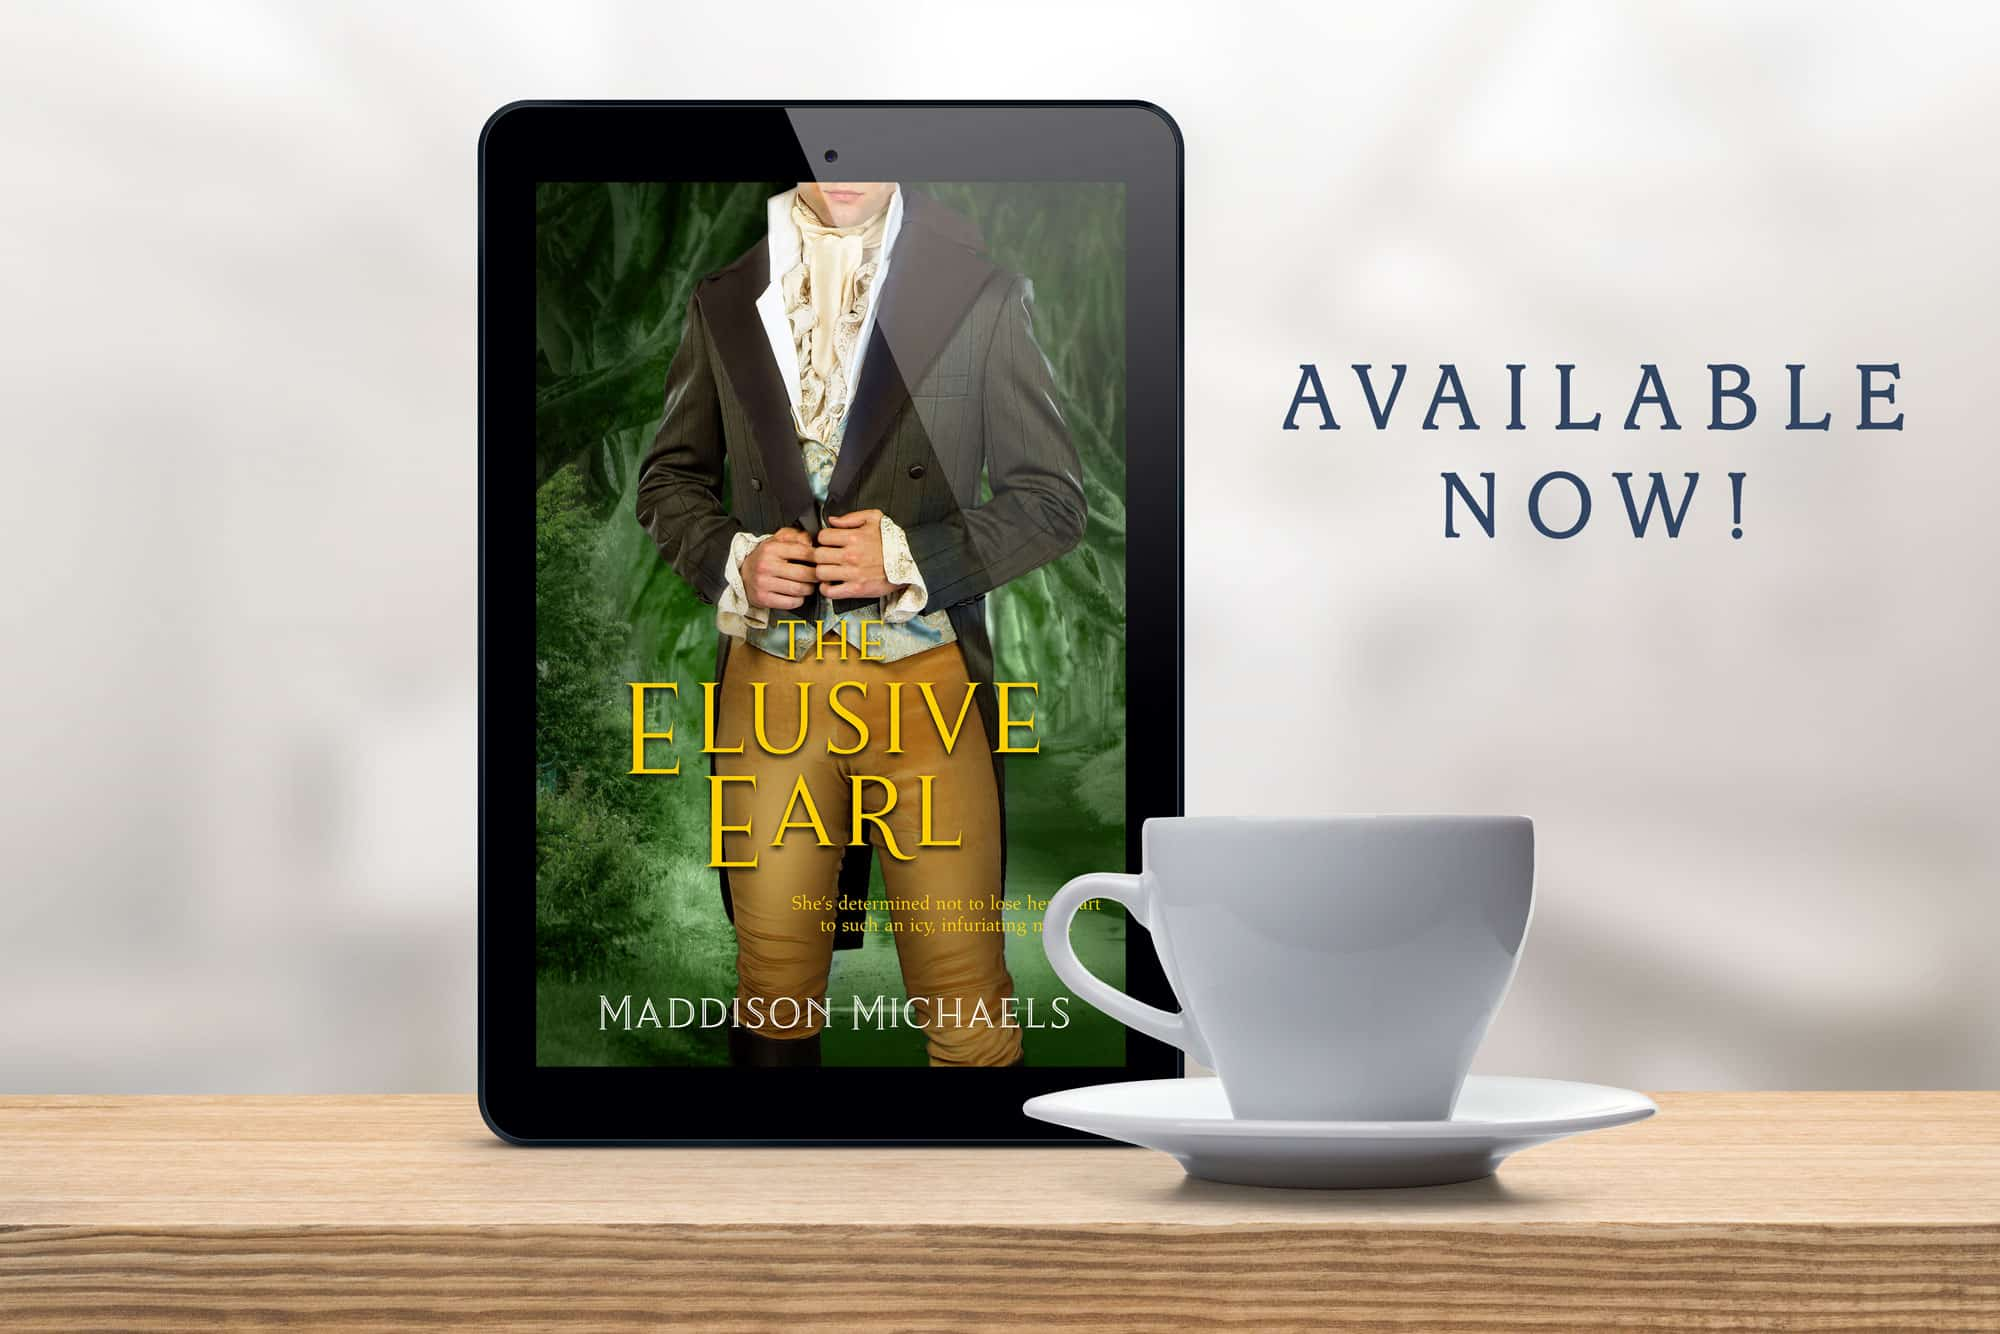 Release Day for The Elusive Earl!